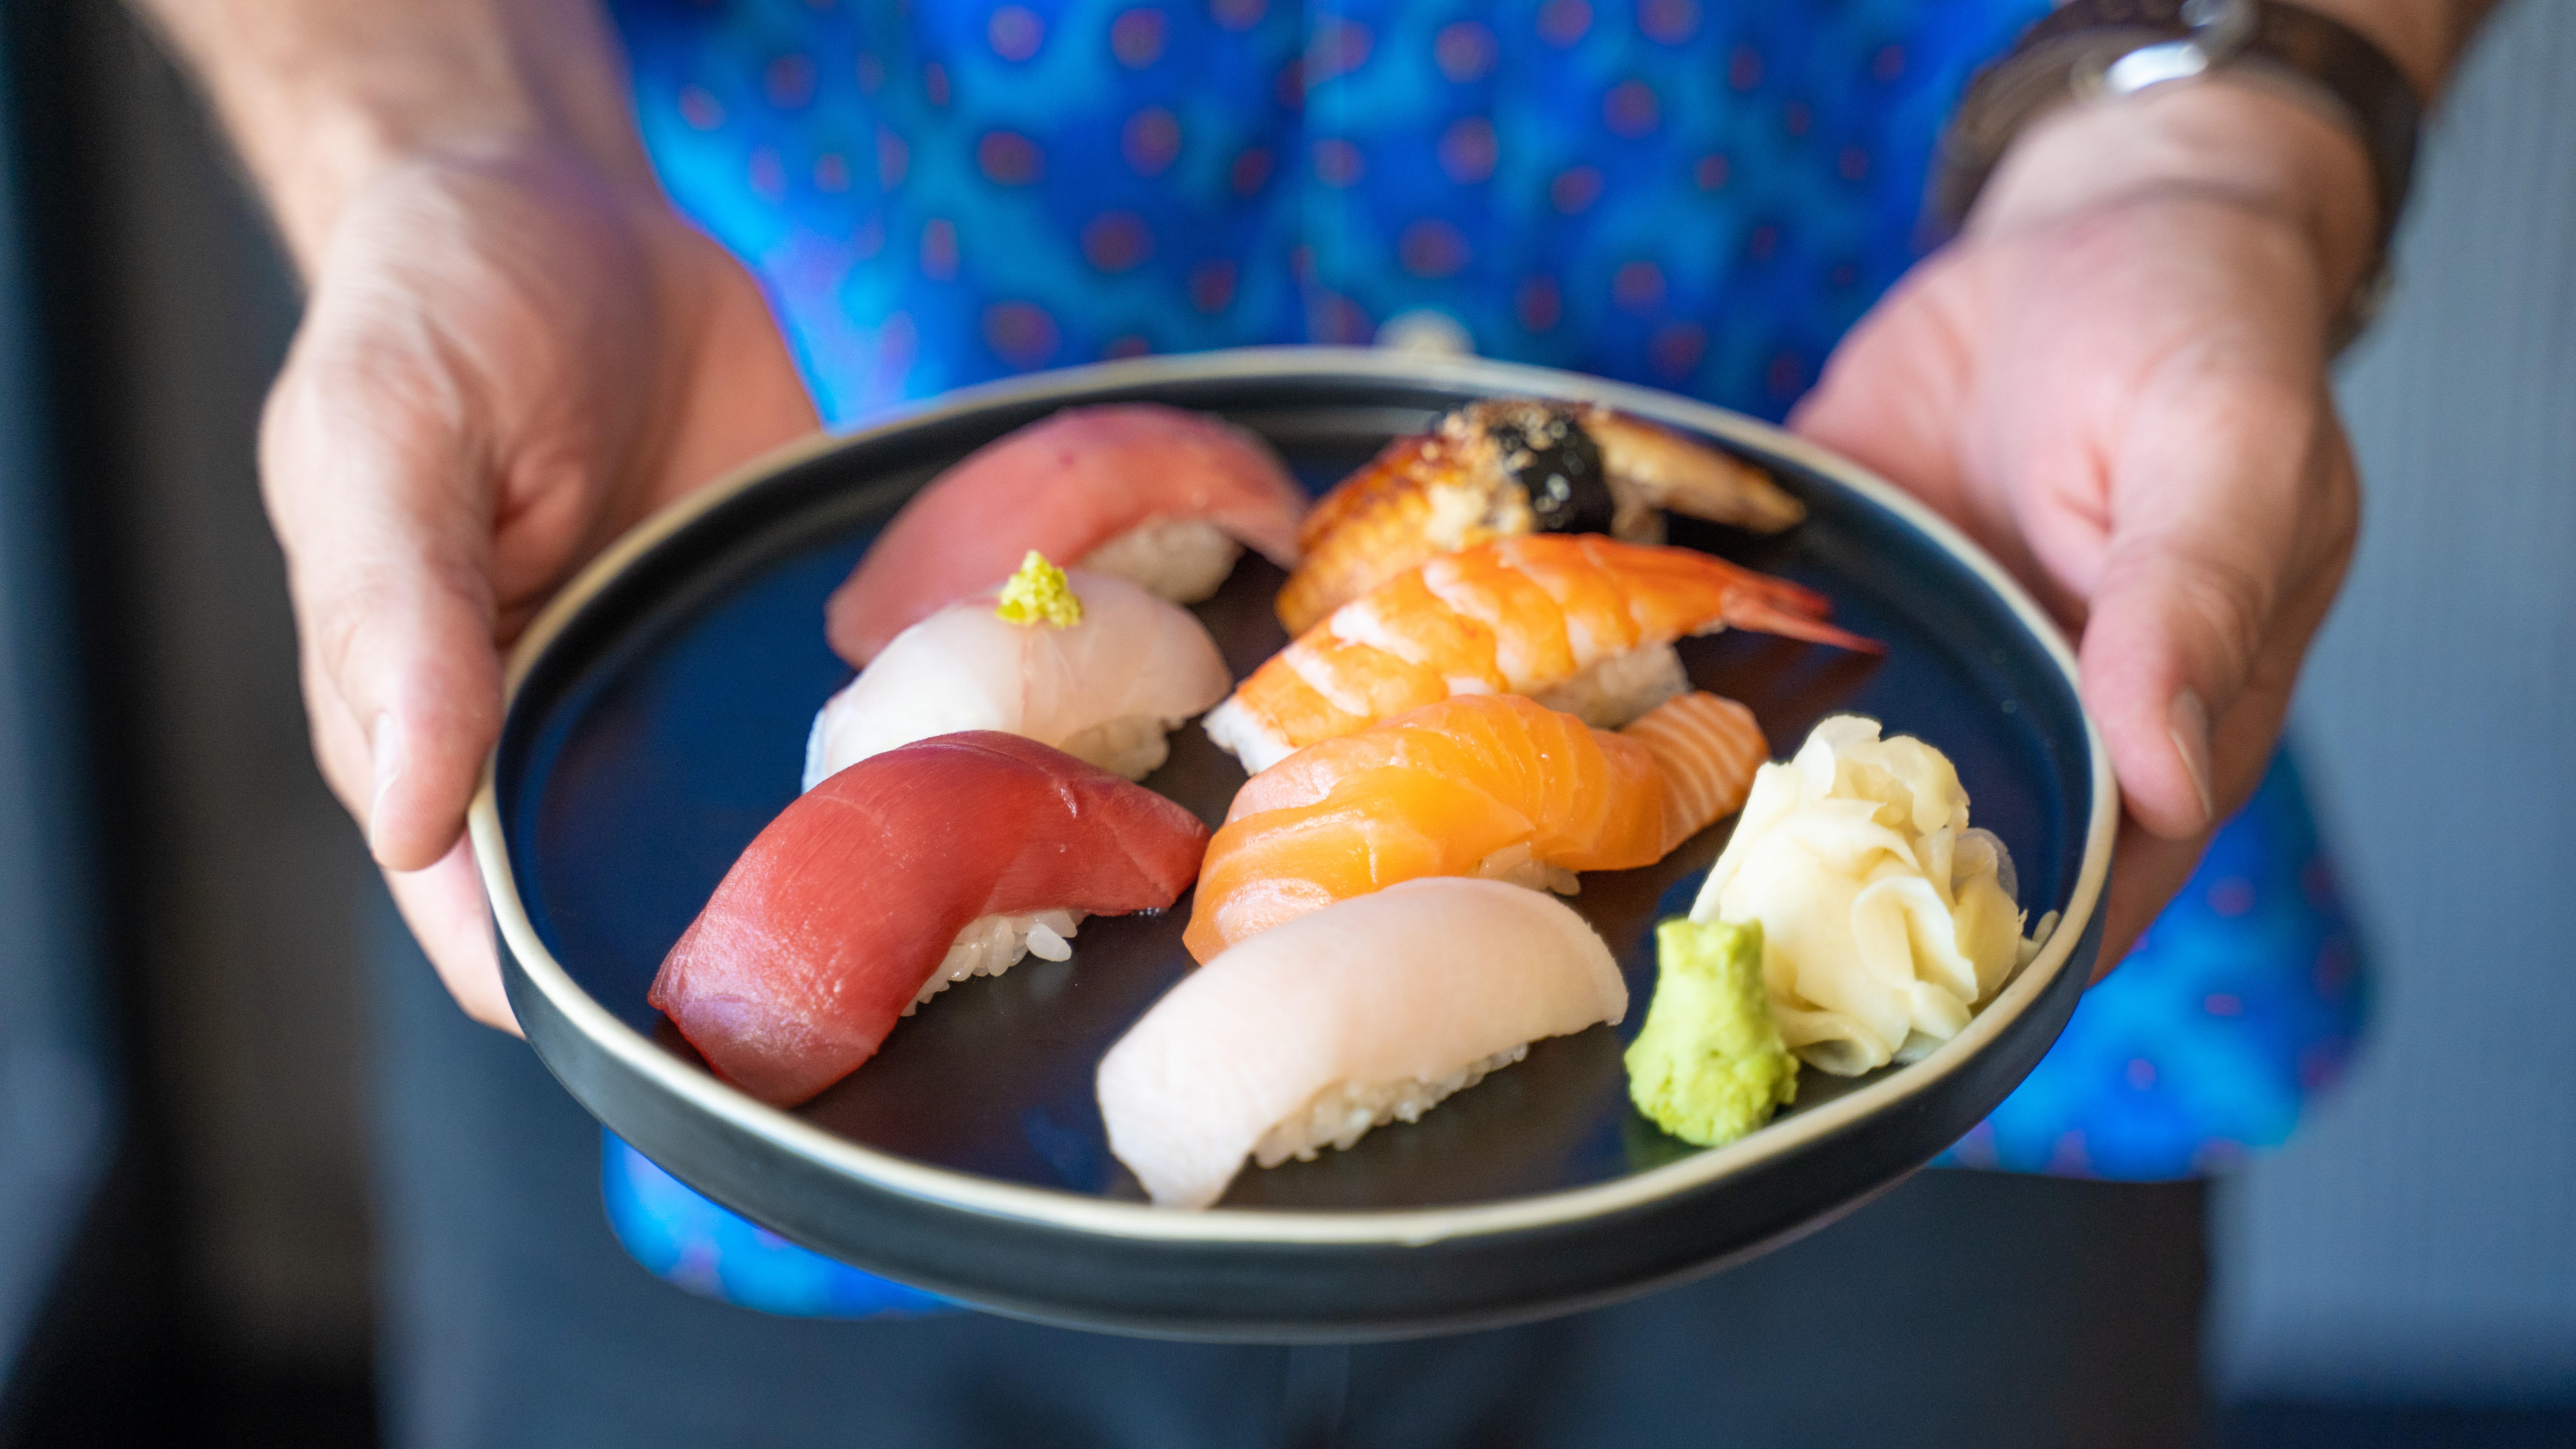 Two hands hold a plate of nigiri sushi, ready for service.